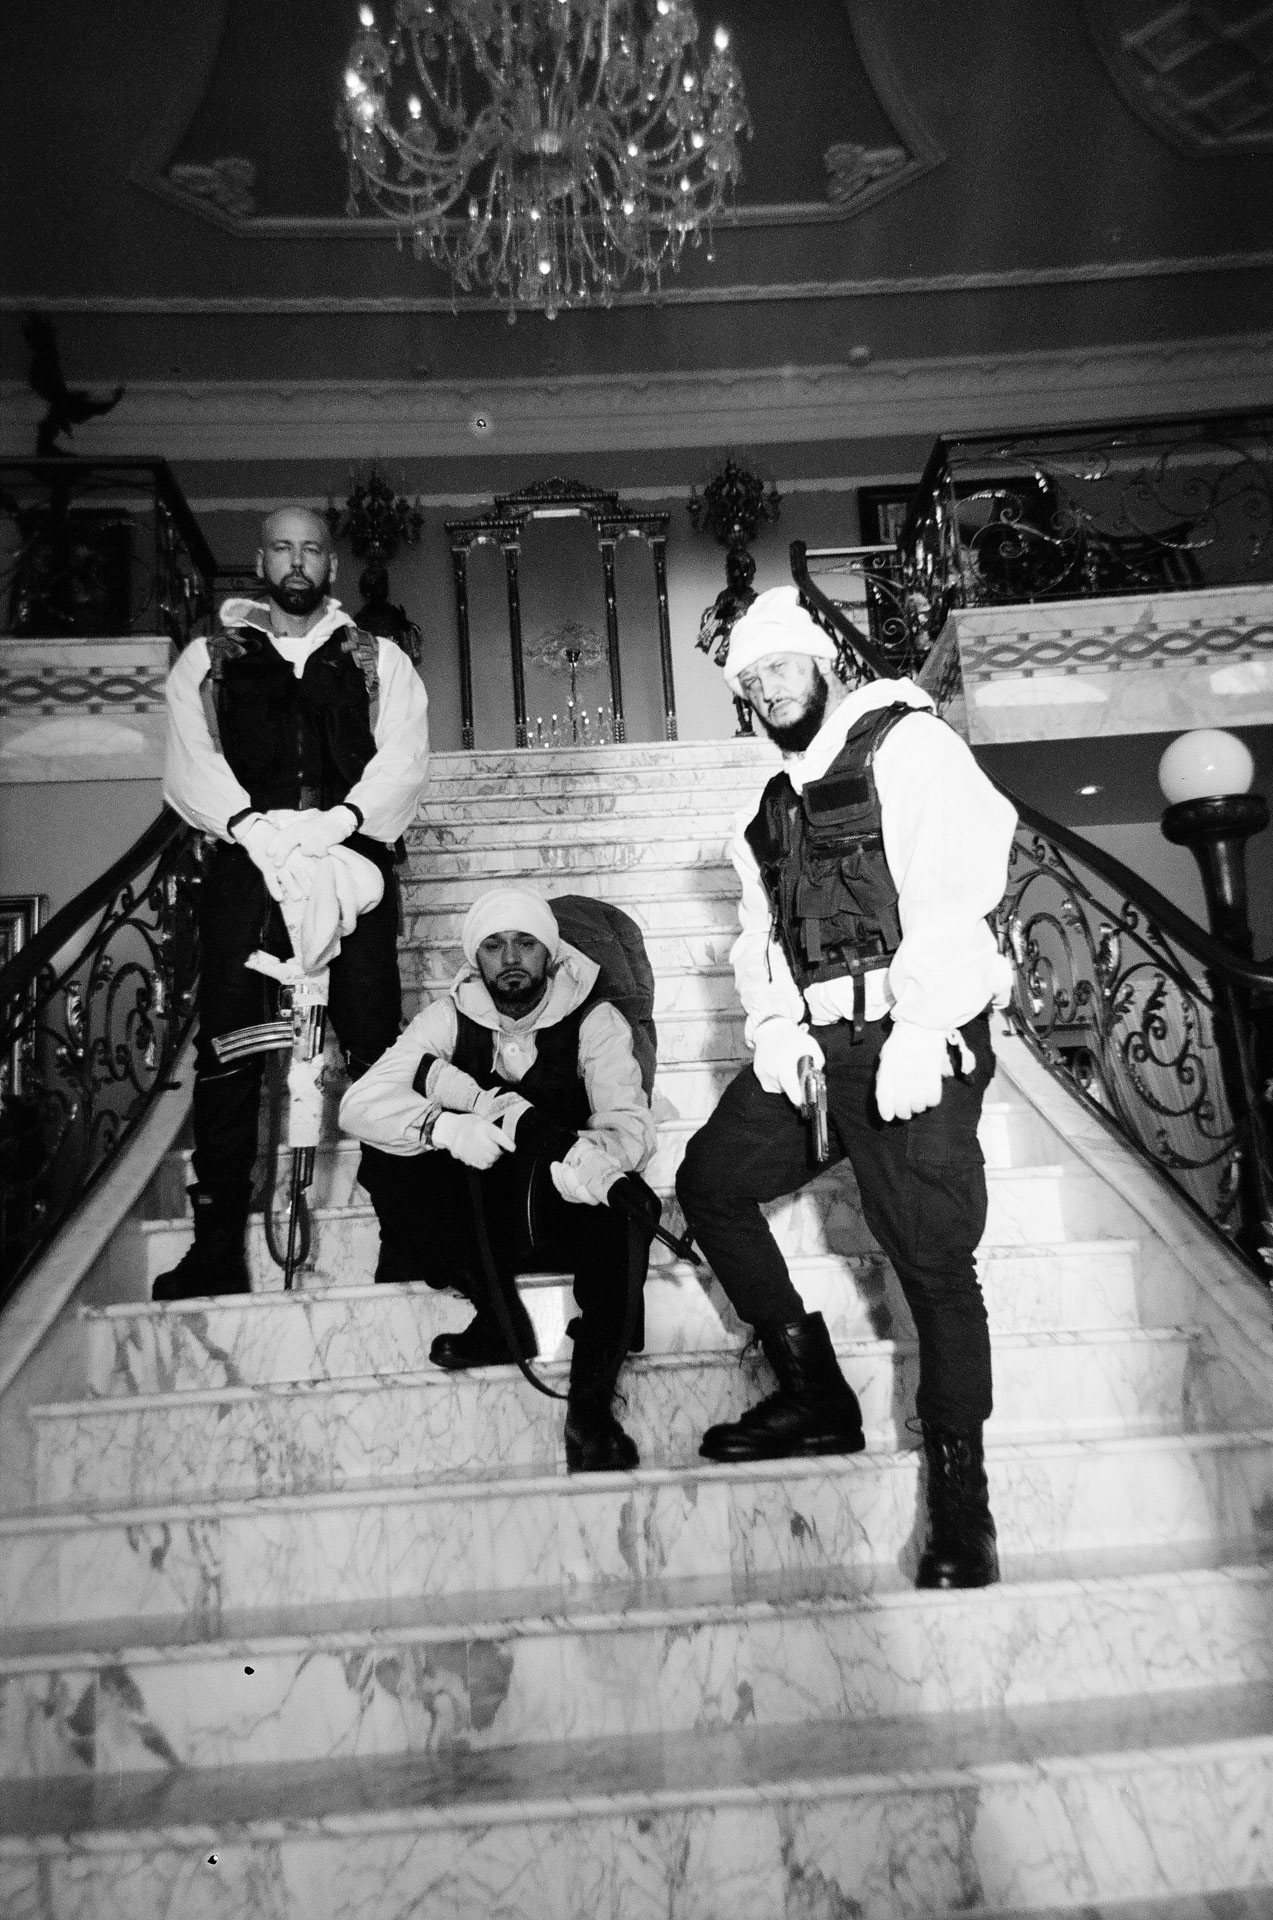 rapper Souldia with Sinik, Seth Gueko and Rick Pagano posing on marble stairs for his music video Rouge Neige filmed by Les Gamins